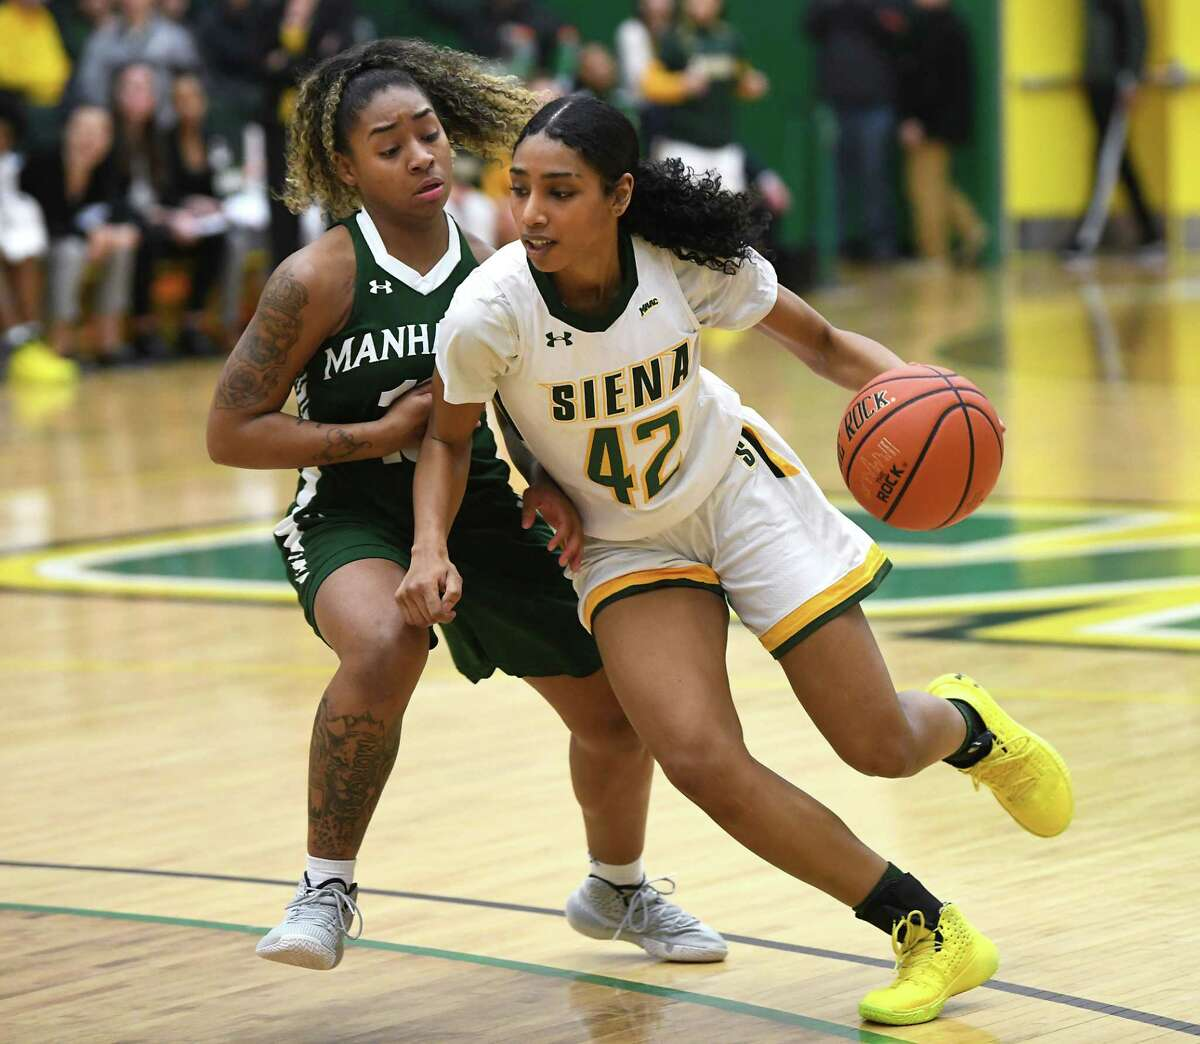 Siena's Sabrina Piper drives to the basket against Manhattan's Lizahya Morgan during a game on Thursday, Jan. 16, 2020 in Loudonville, N.Y. It was also the